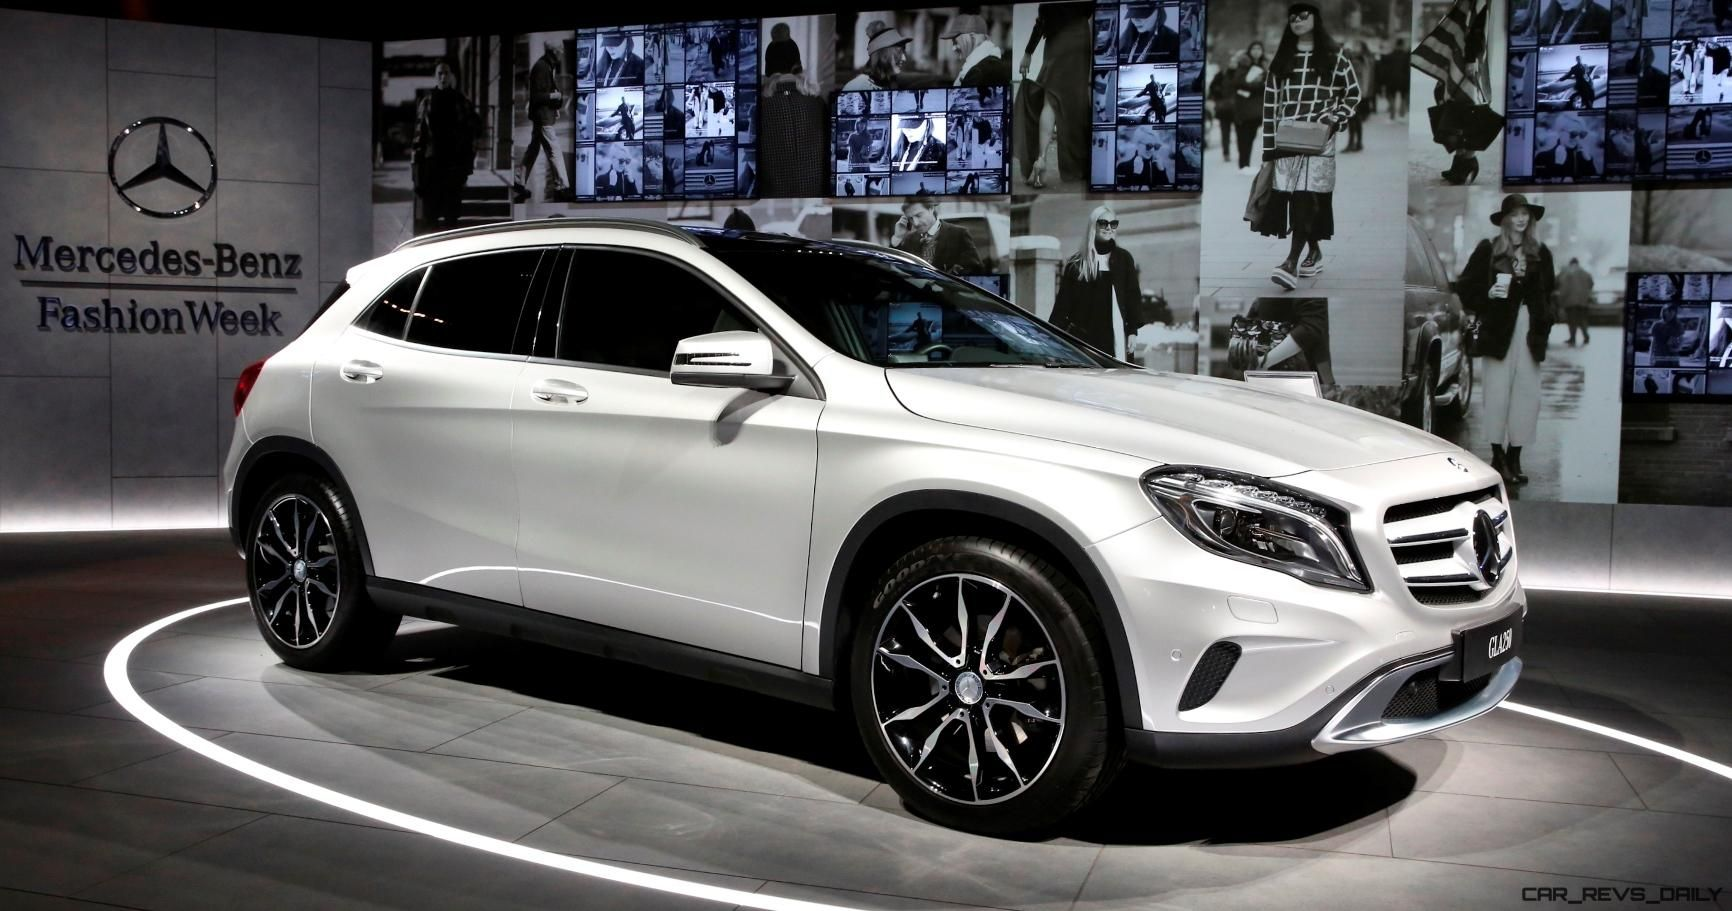 First Drive Review 2016 Mercedes Benz Gla250 4matic Mercedes Benz Gla Mercedes Benz Benz Suv